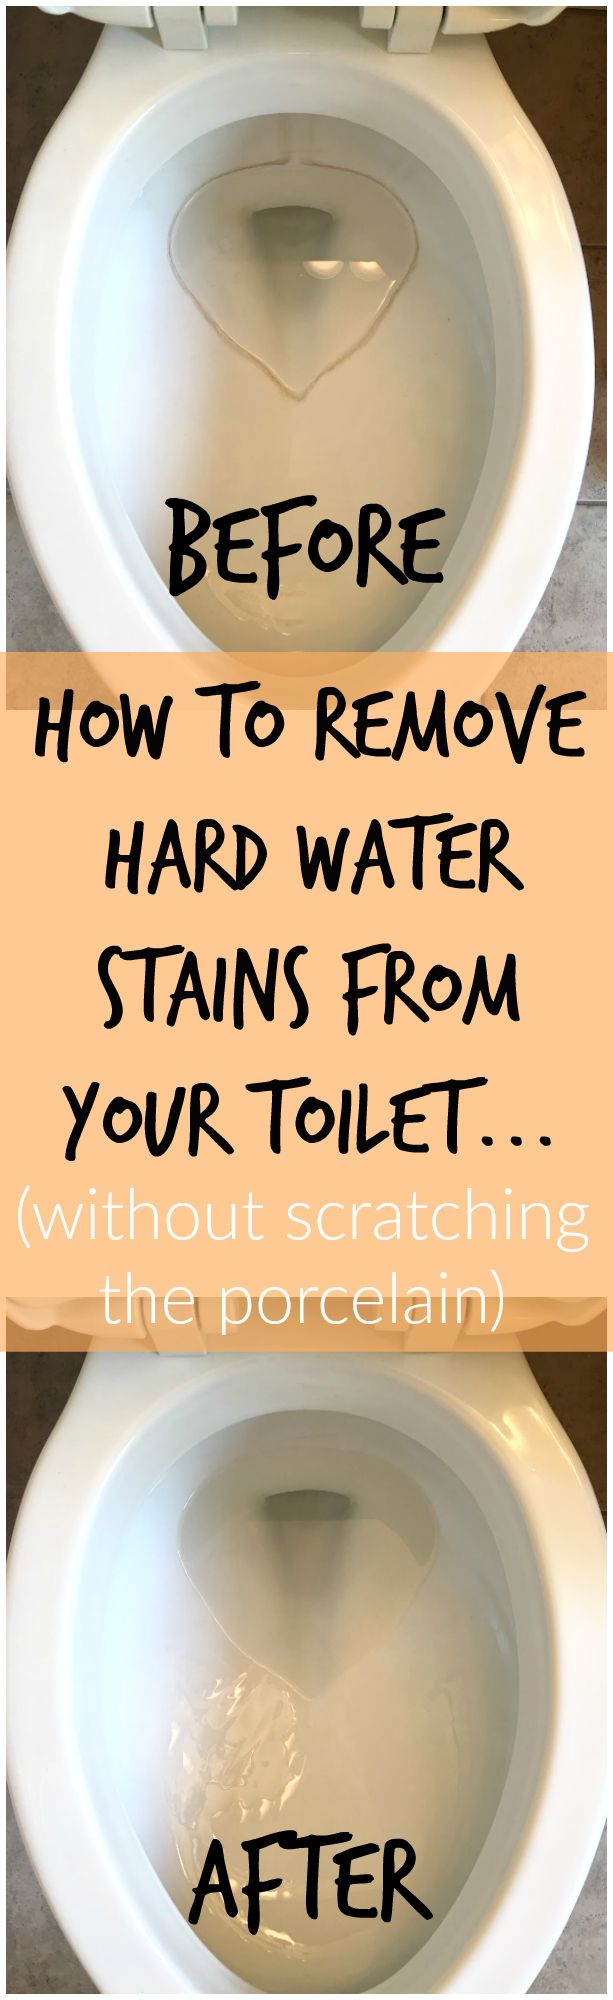 Fast and easy way to remove those impossible hard water stains from toilets (trust me, I tried everything else and this was the only thing that worked!).